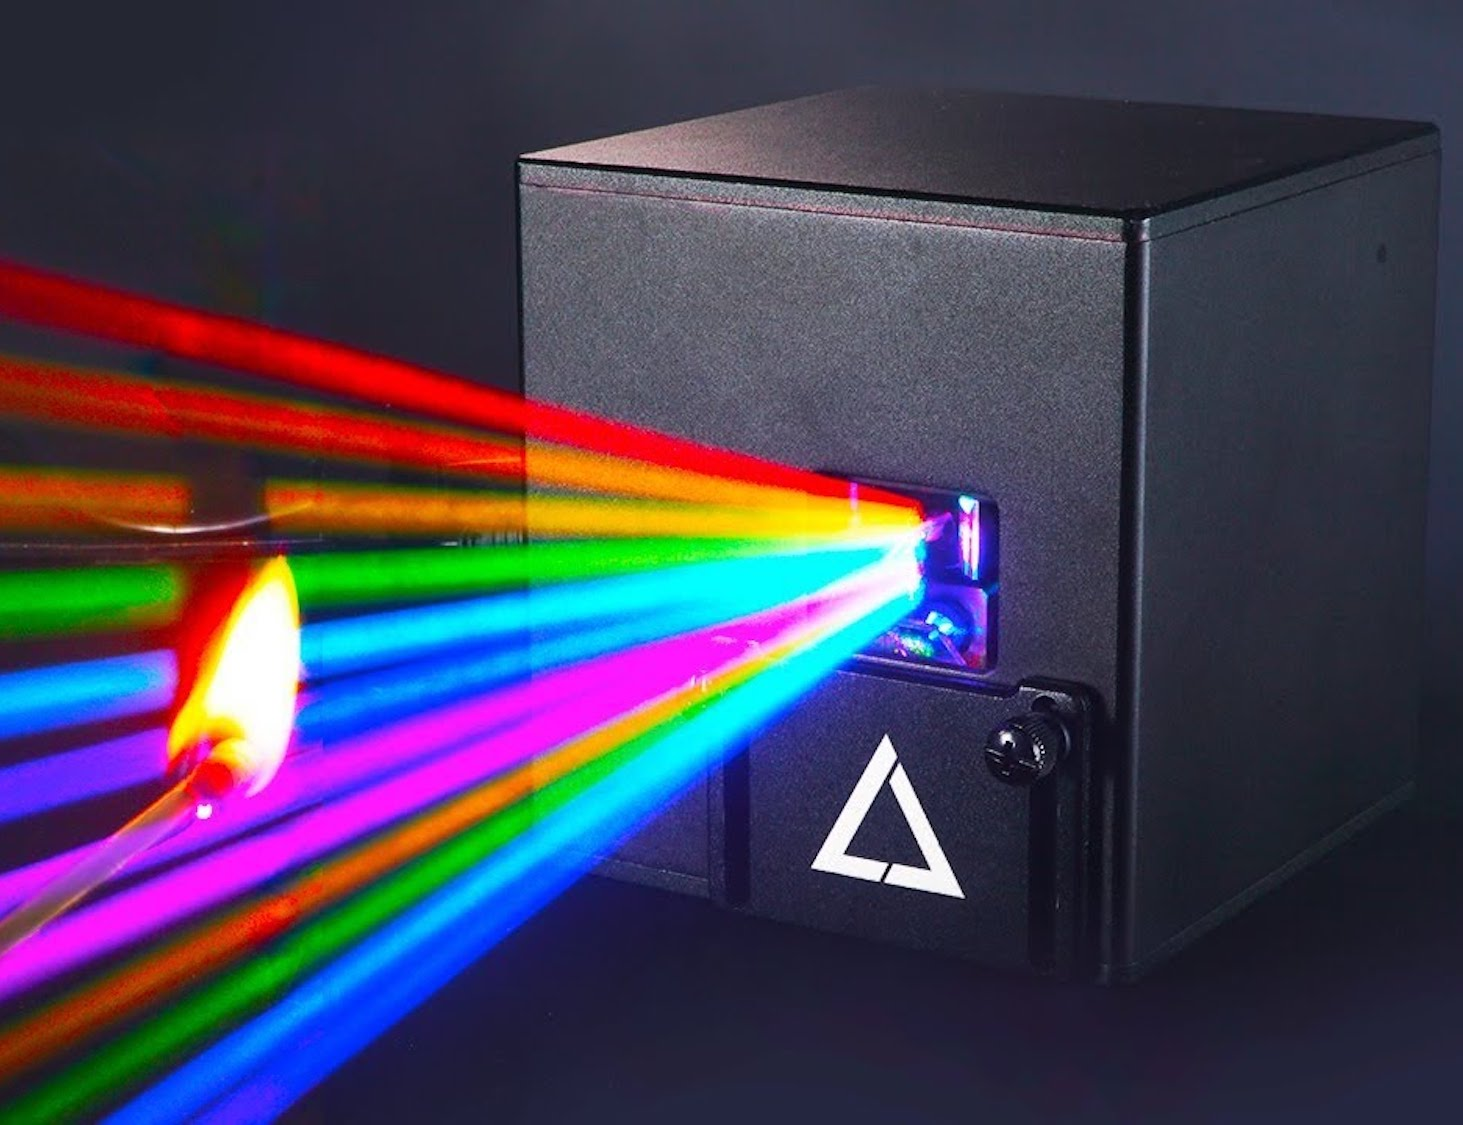 Wicked Lasers LaserCube Laser Projector lets you put on a light show in your house